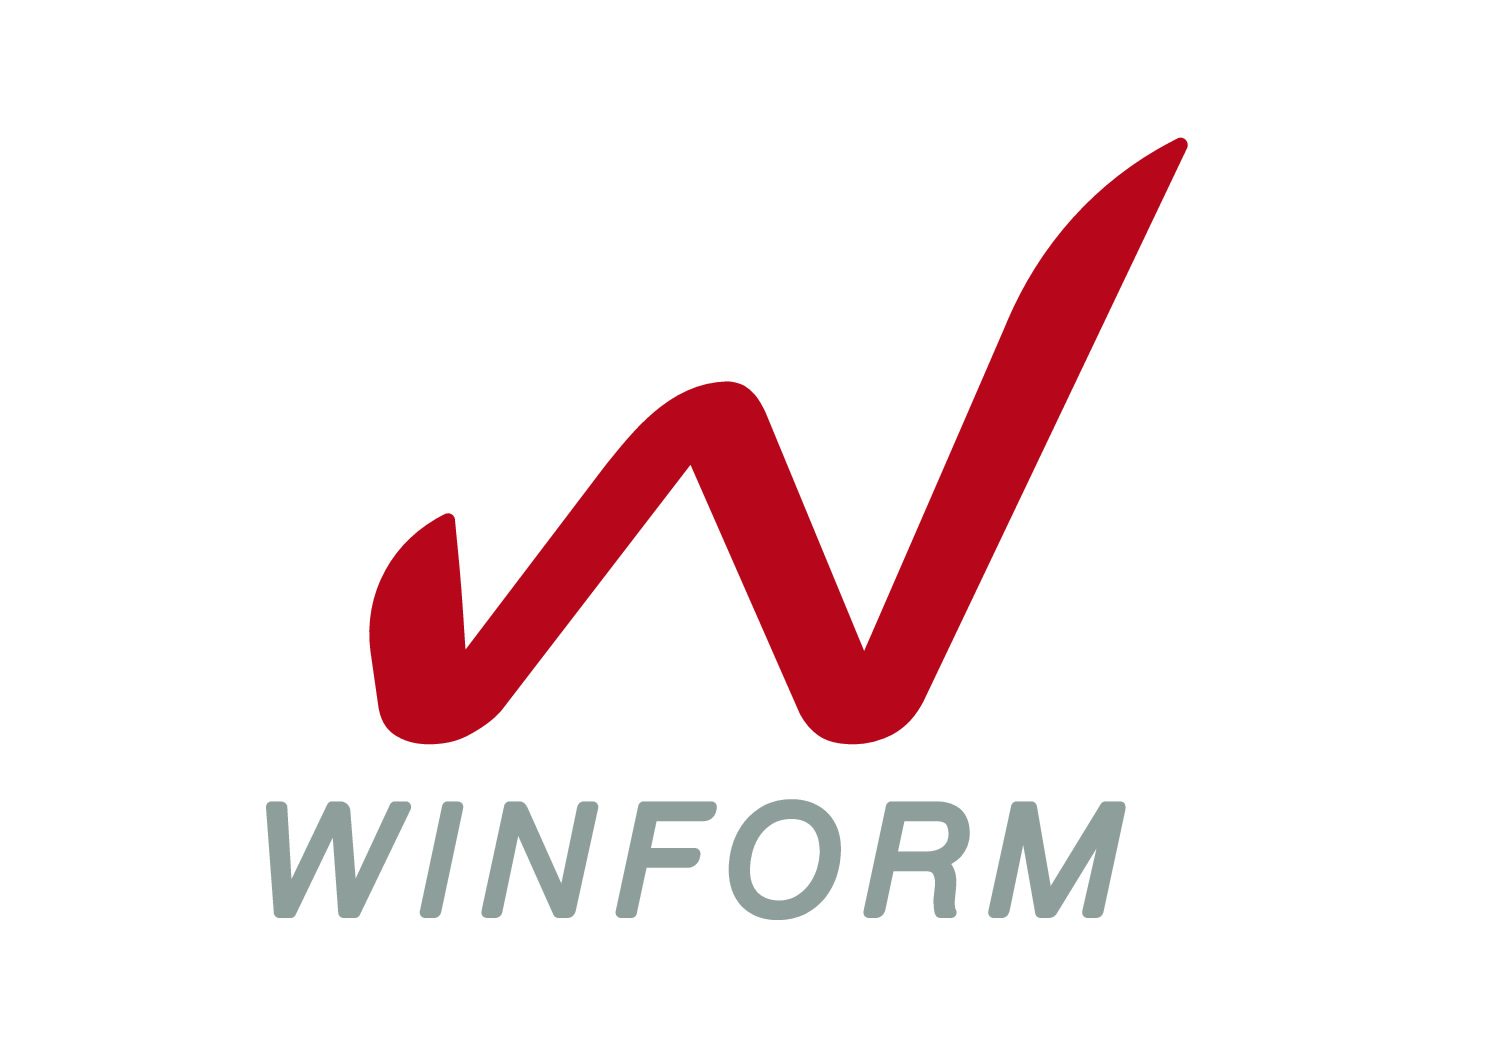 WINFORM